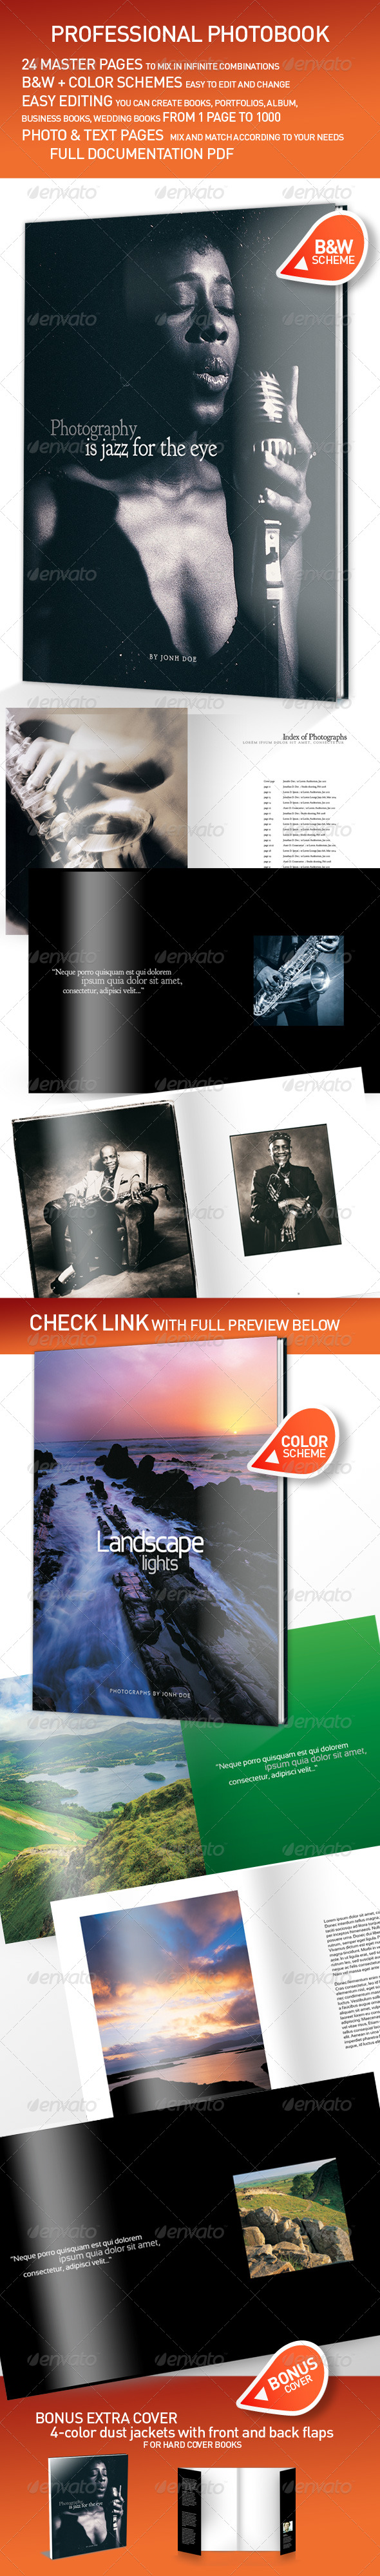 GraphicRiver Professional Photobook Template InDesign 165351